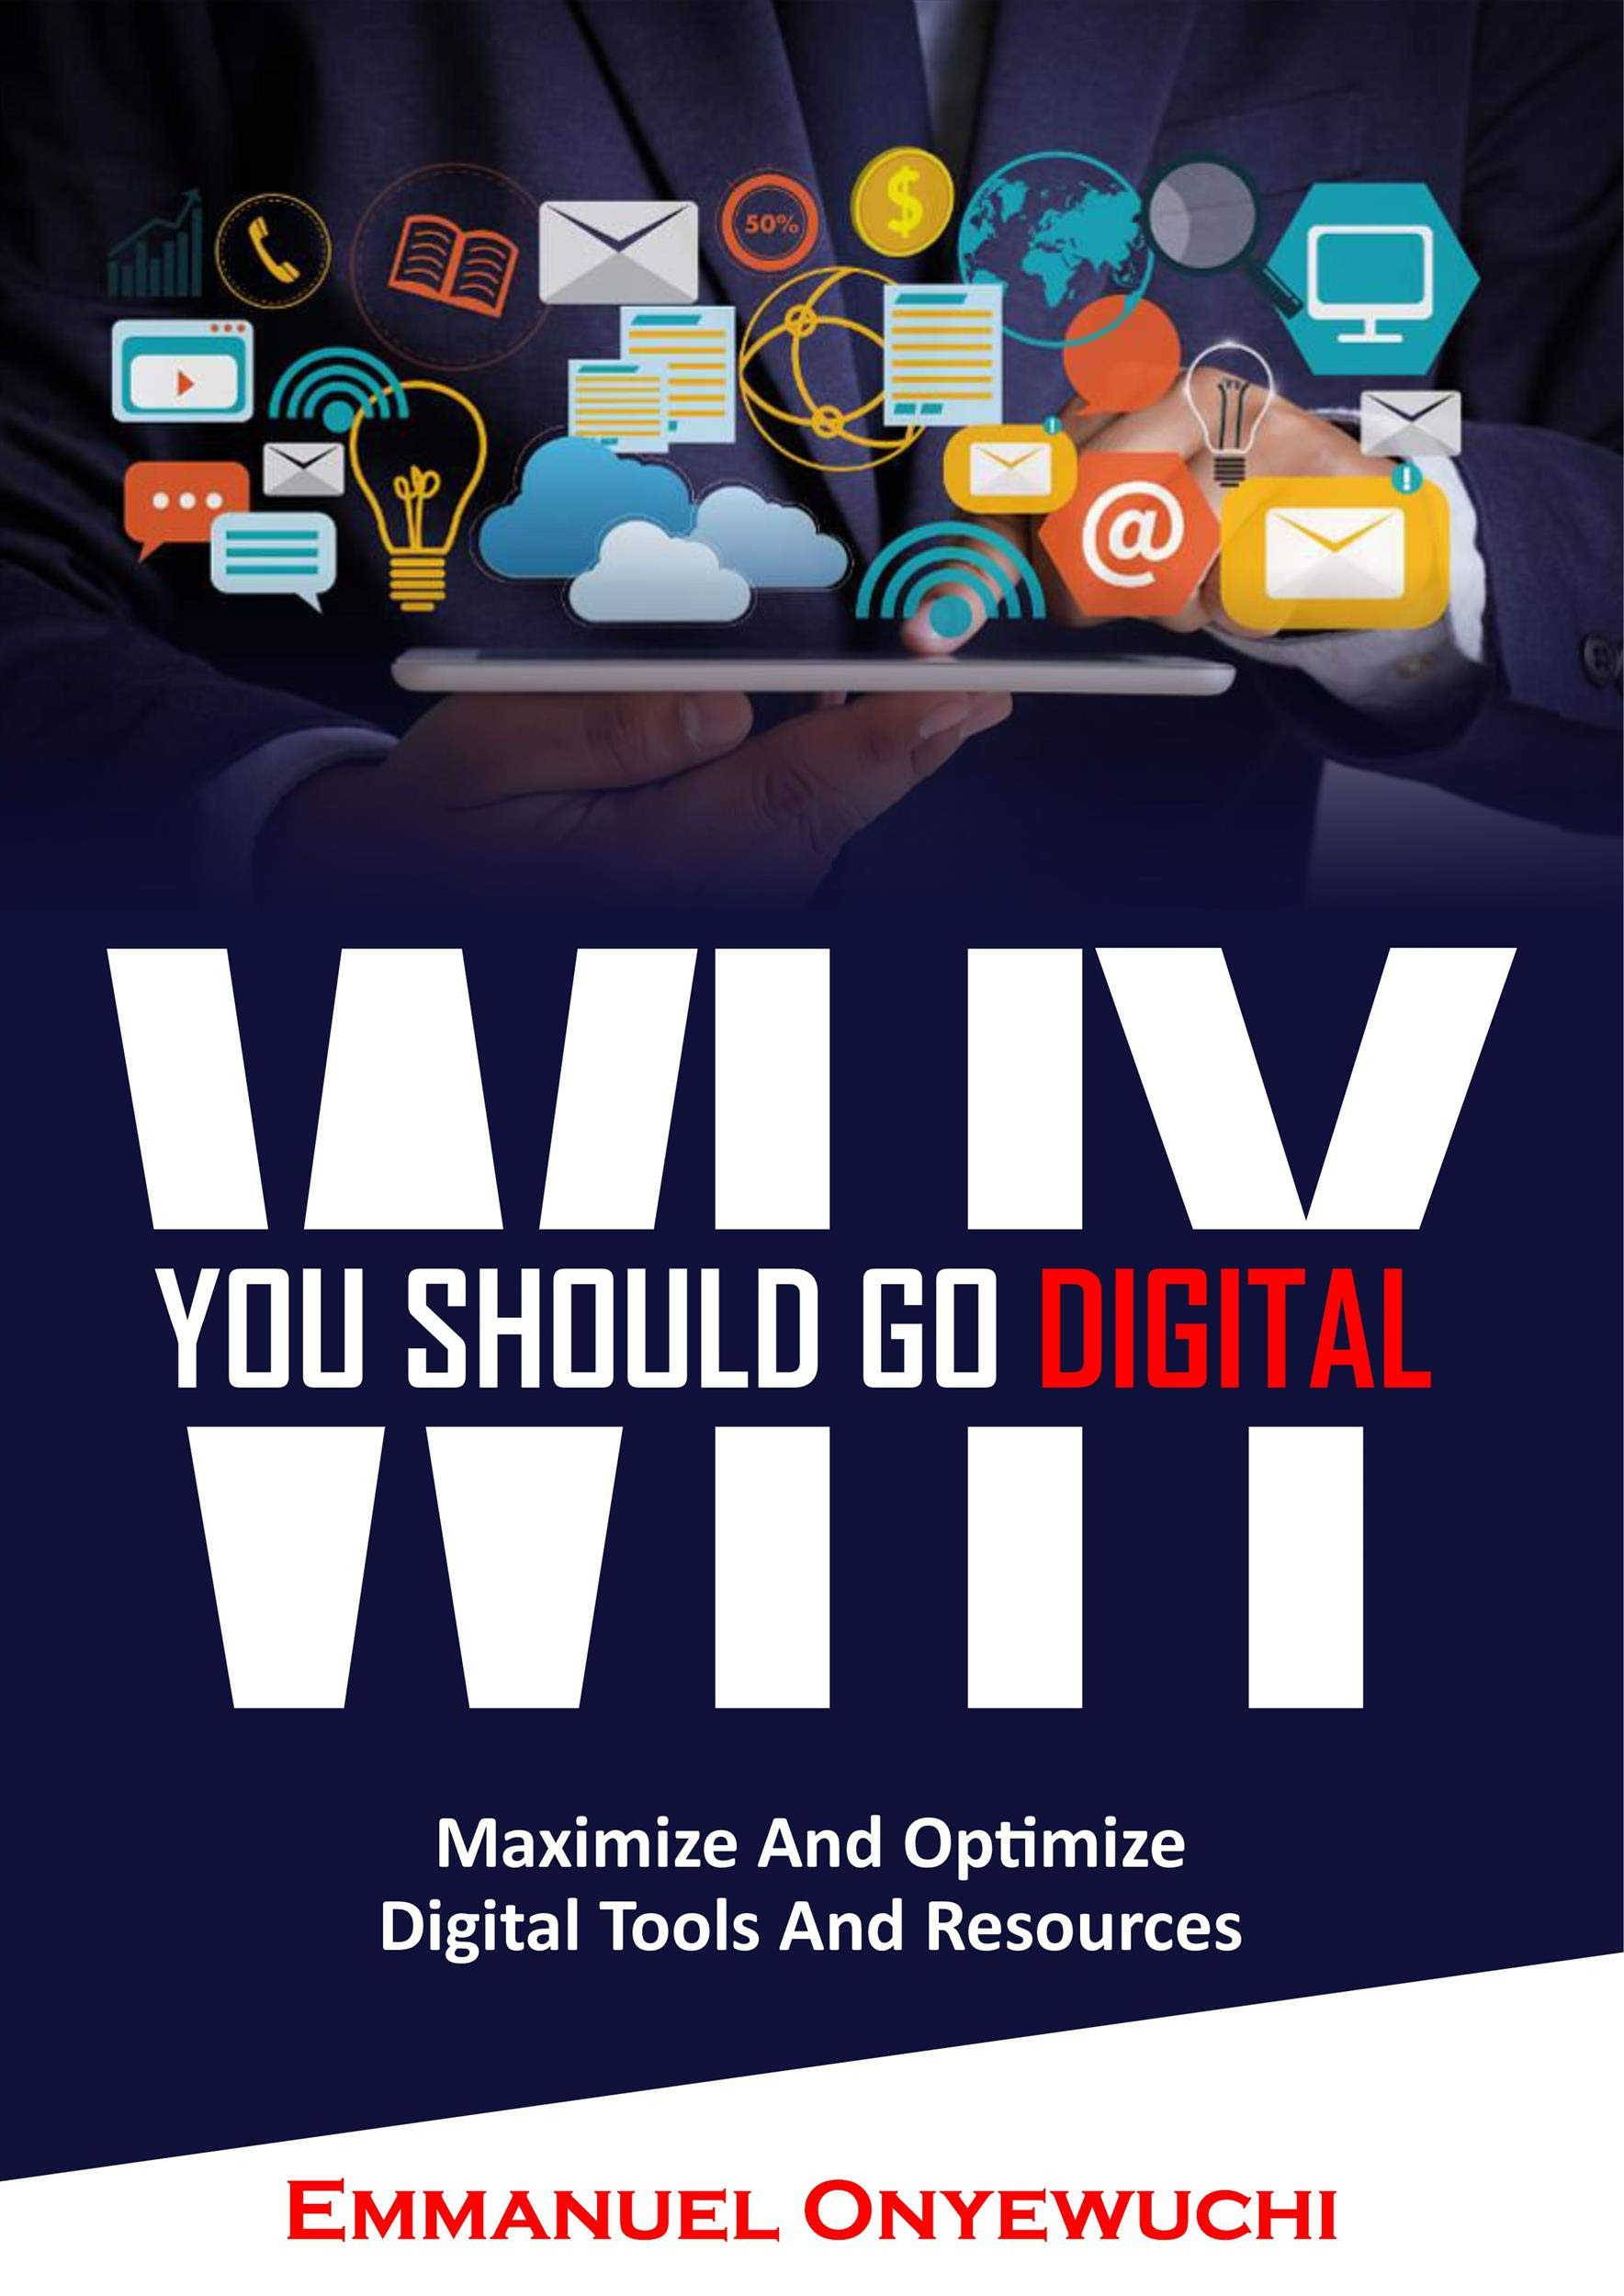 Why You Should Go Digital : Optimize and Maximize Digital Tools and Resources